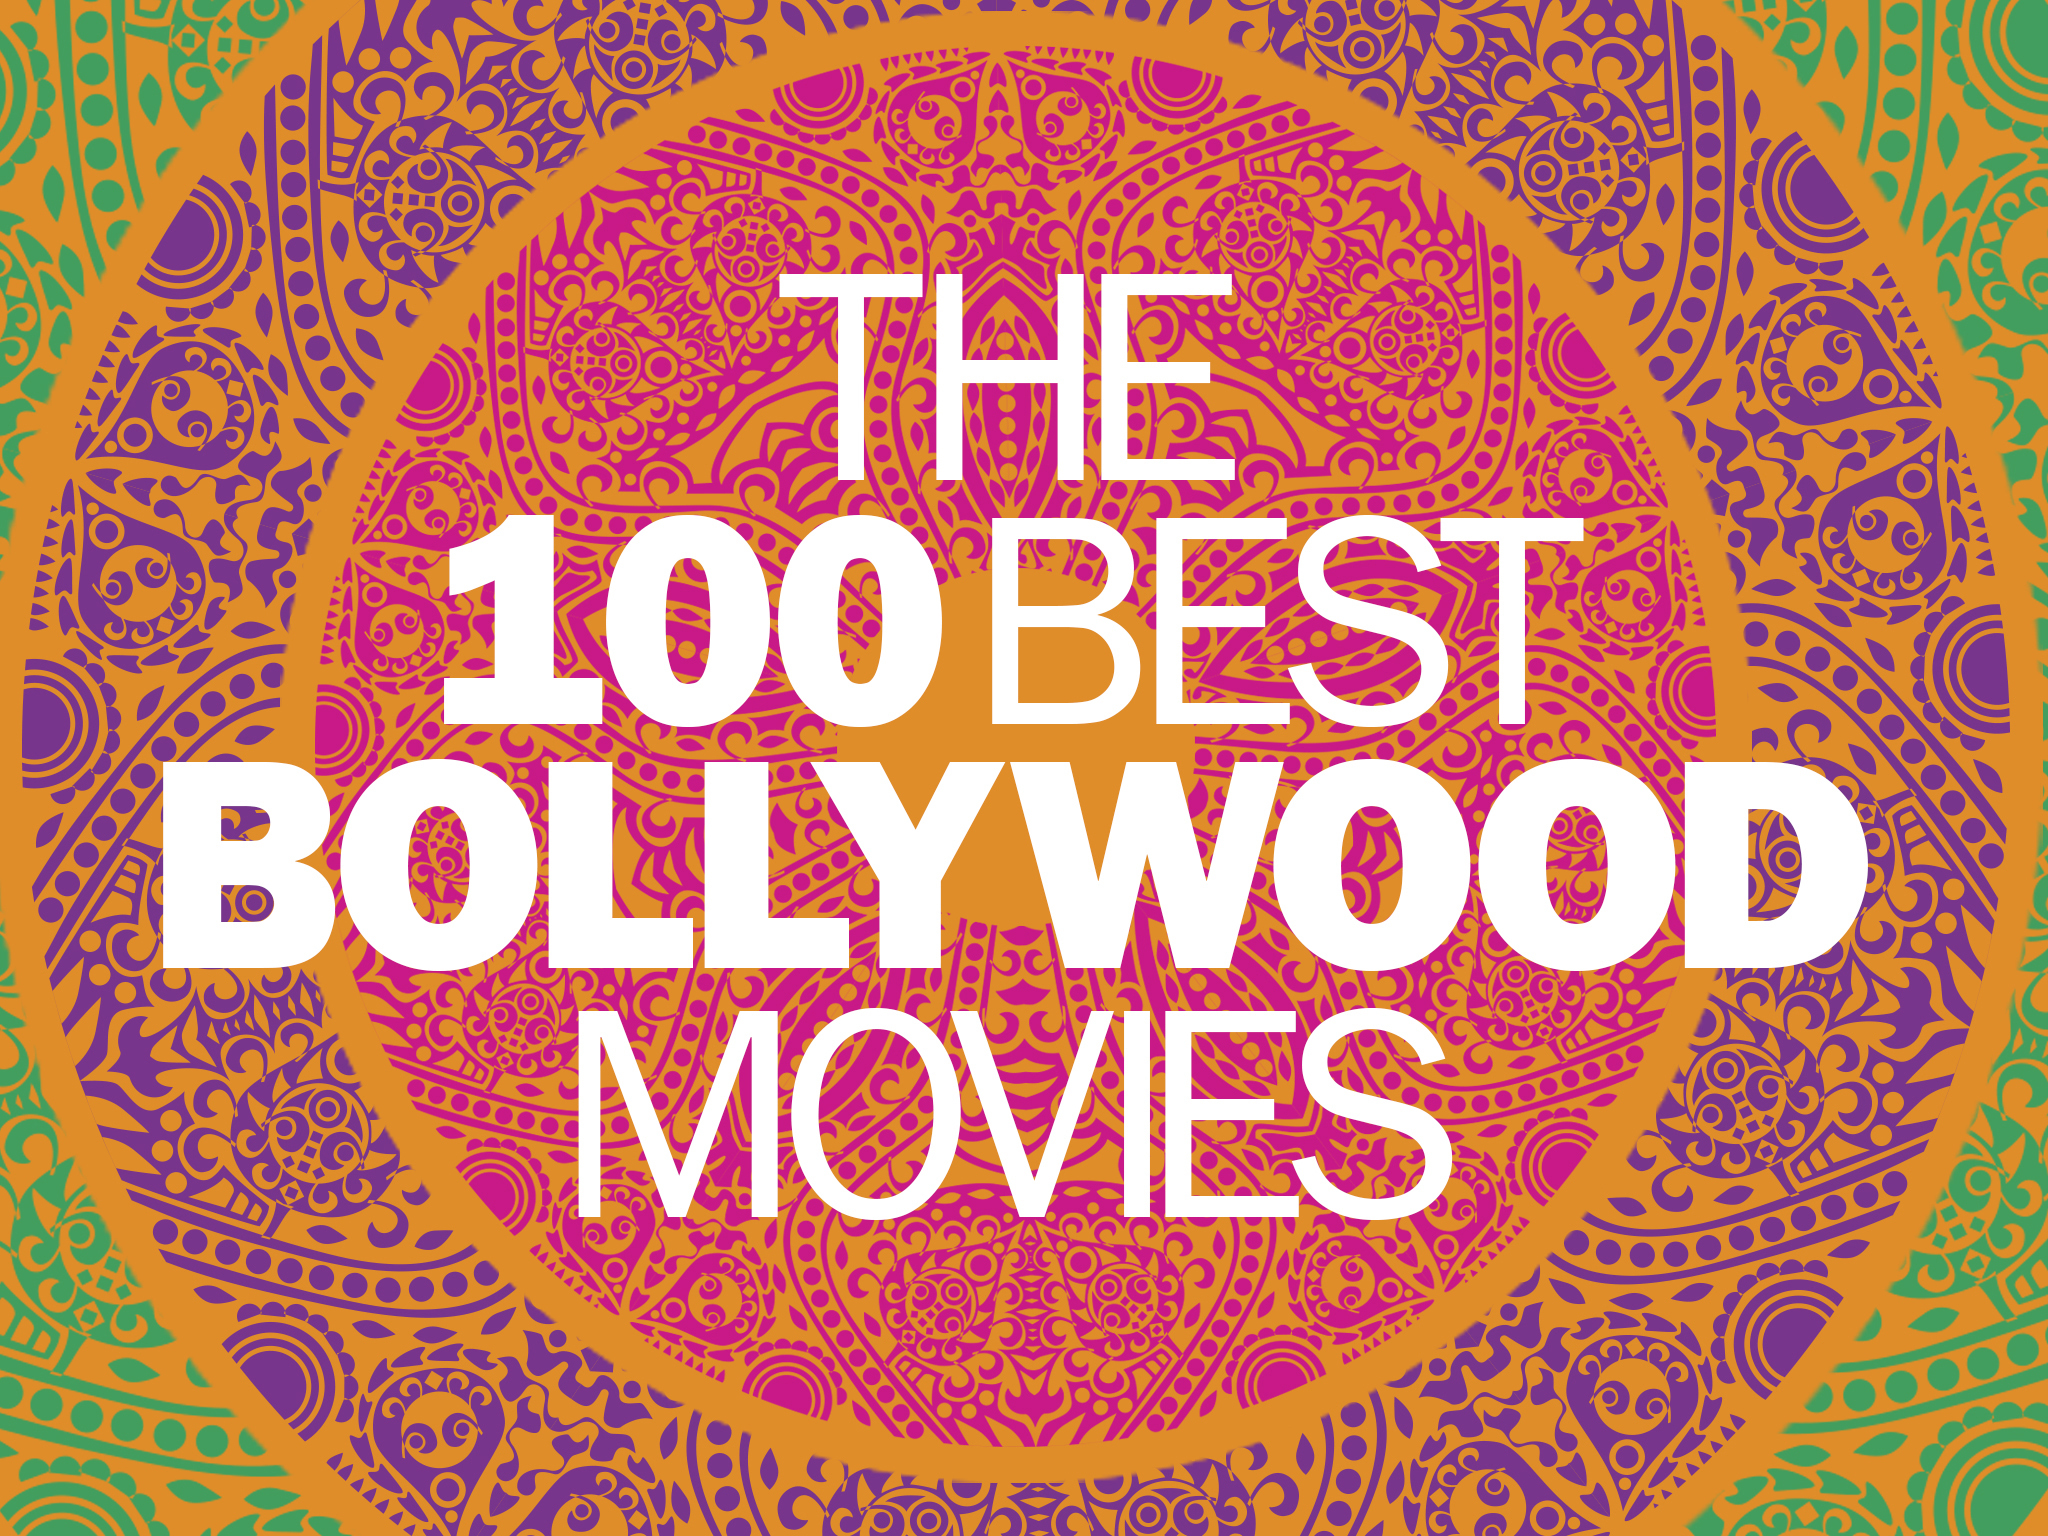 Most popular bollywood songs of all time